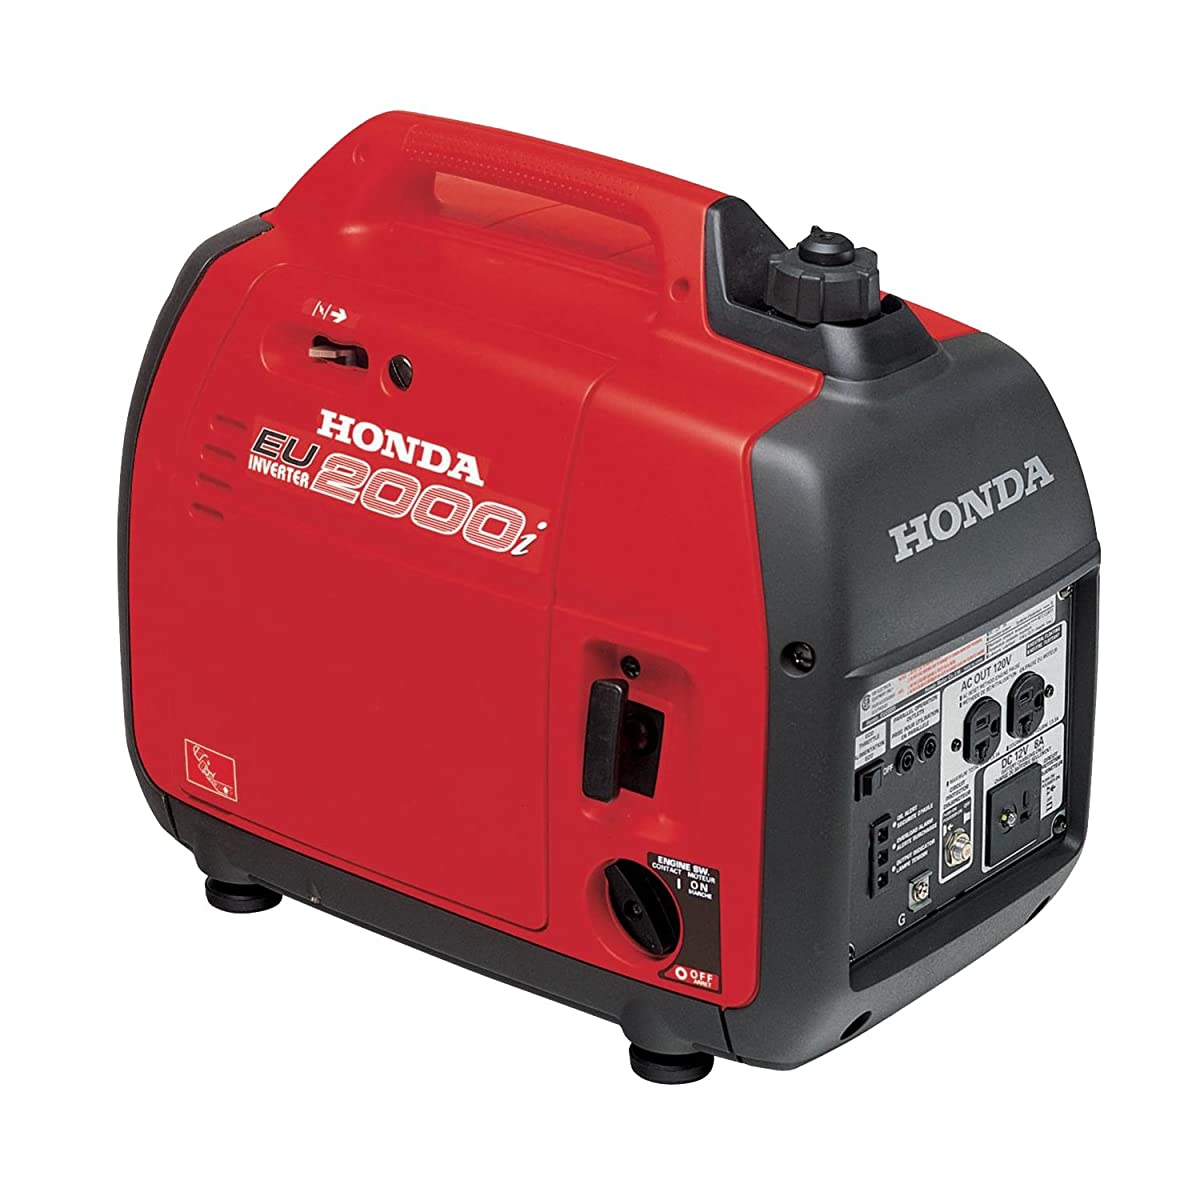 Honda EU2000I 2000 Watt Inverter Generator via Amazon